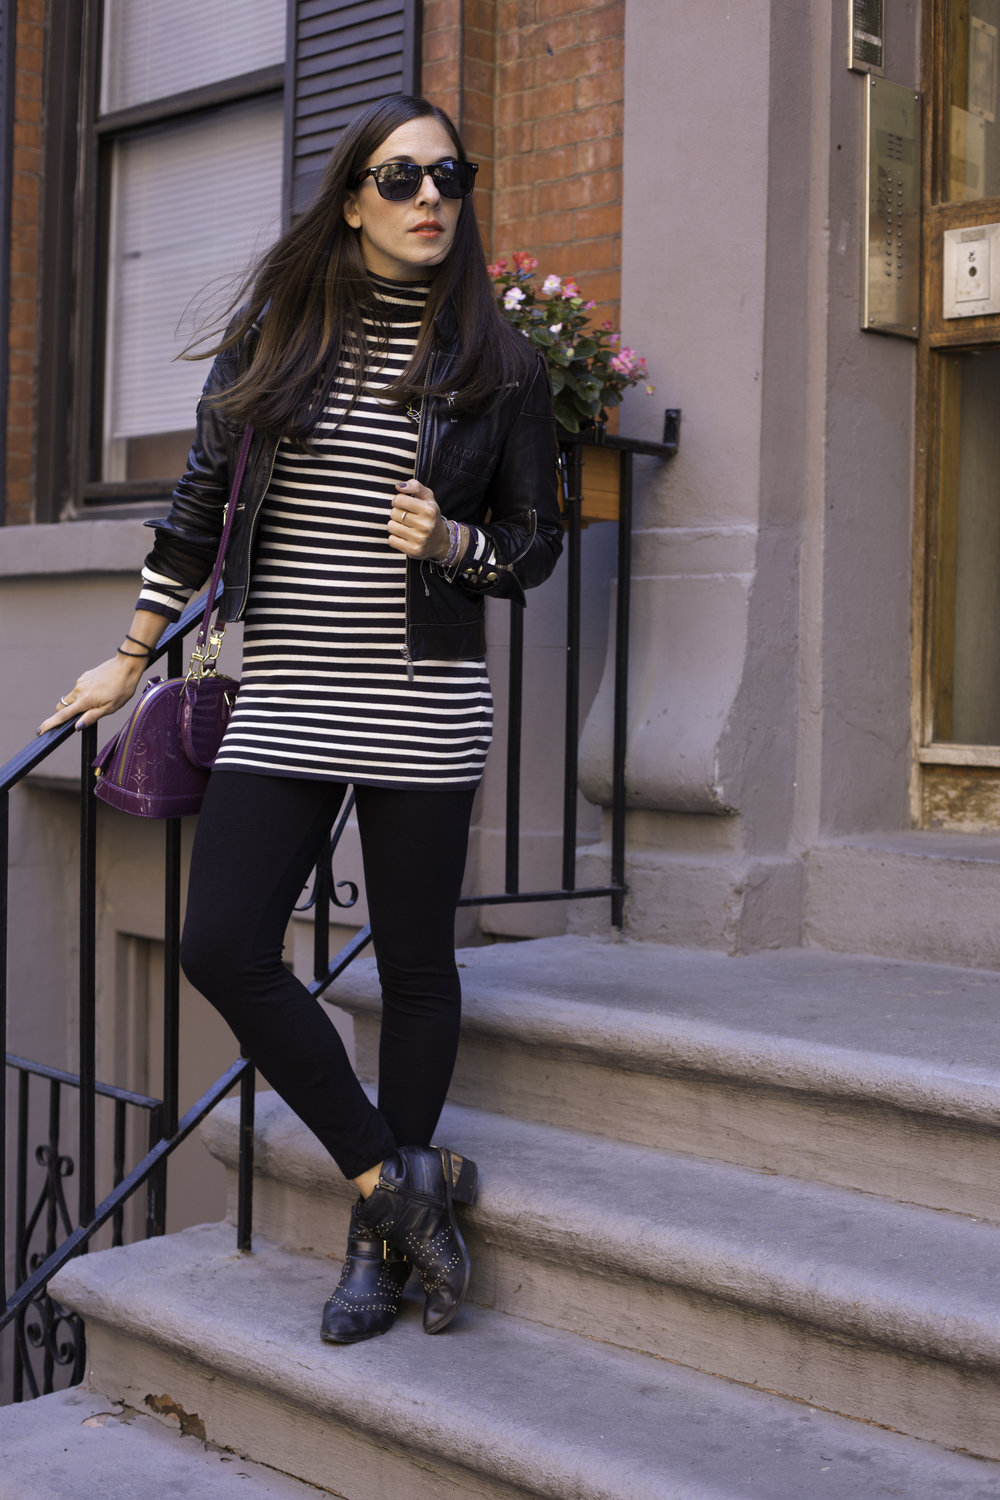 Wearing black leggings with my  Aldo  booties,  H&M  bodycon striped dress and  Bebe  leather biker jacket.  Louis Vuitton  mini cross body Alma bag. Photography by  Francisco Graciano .